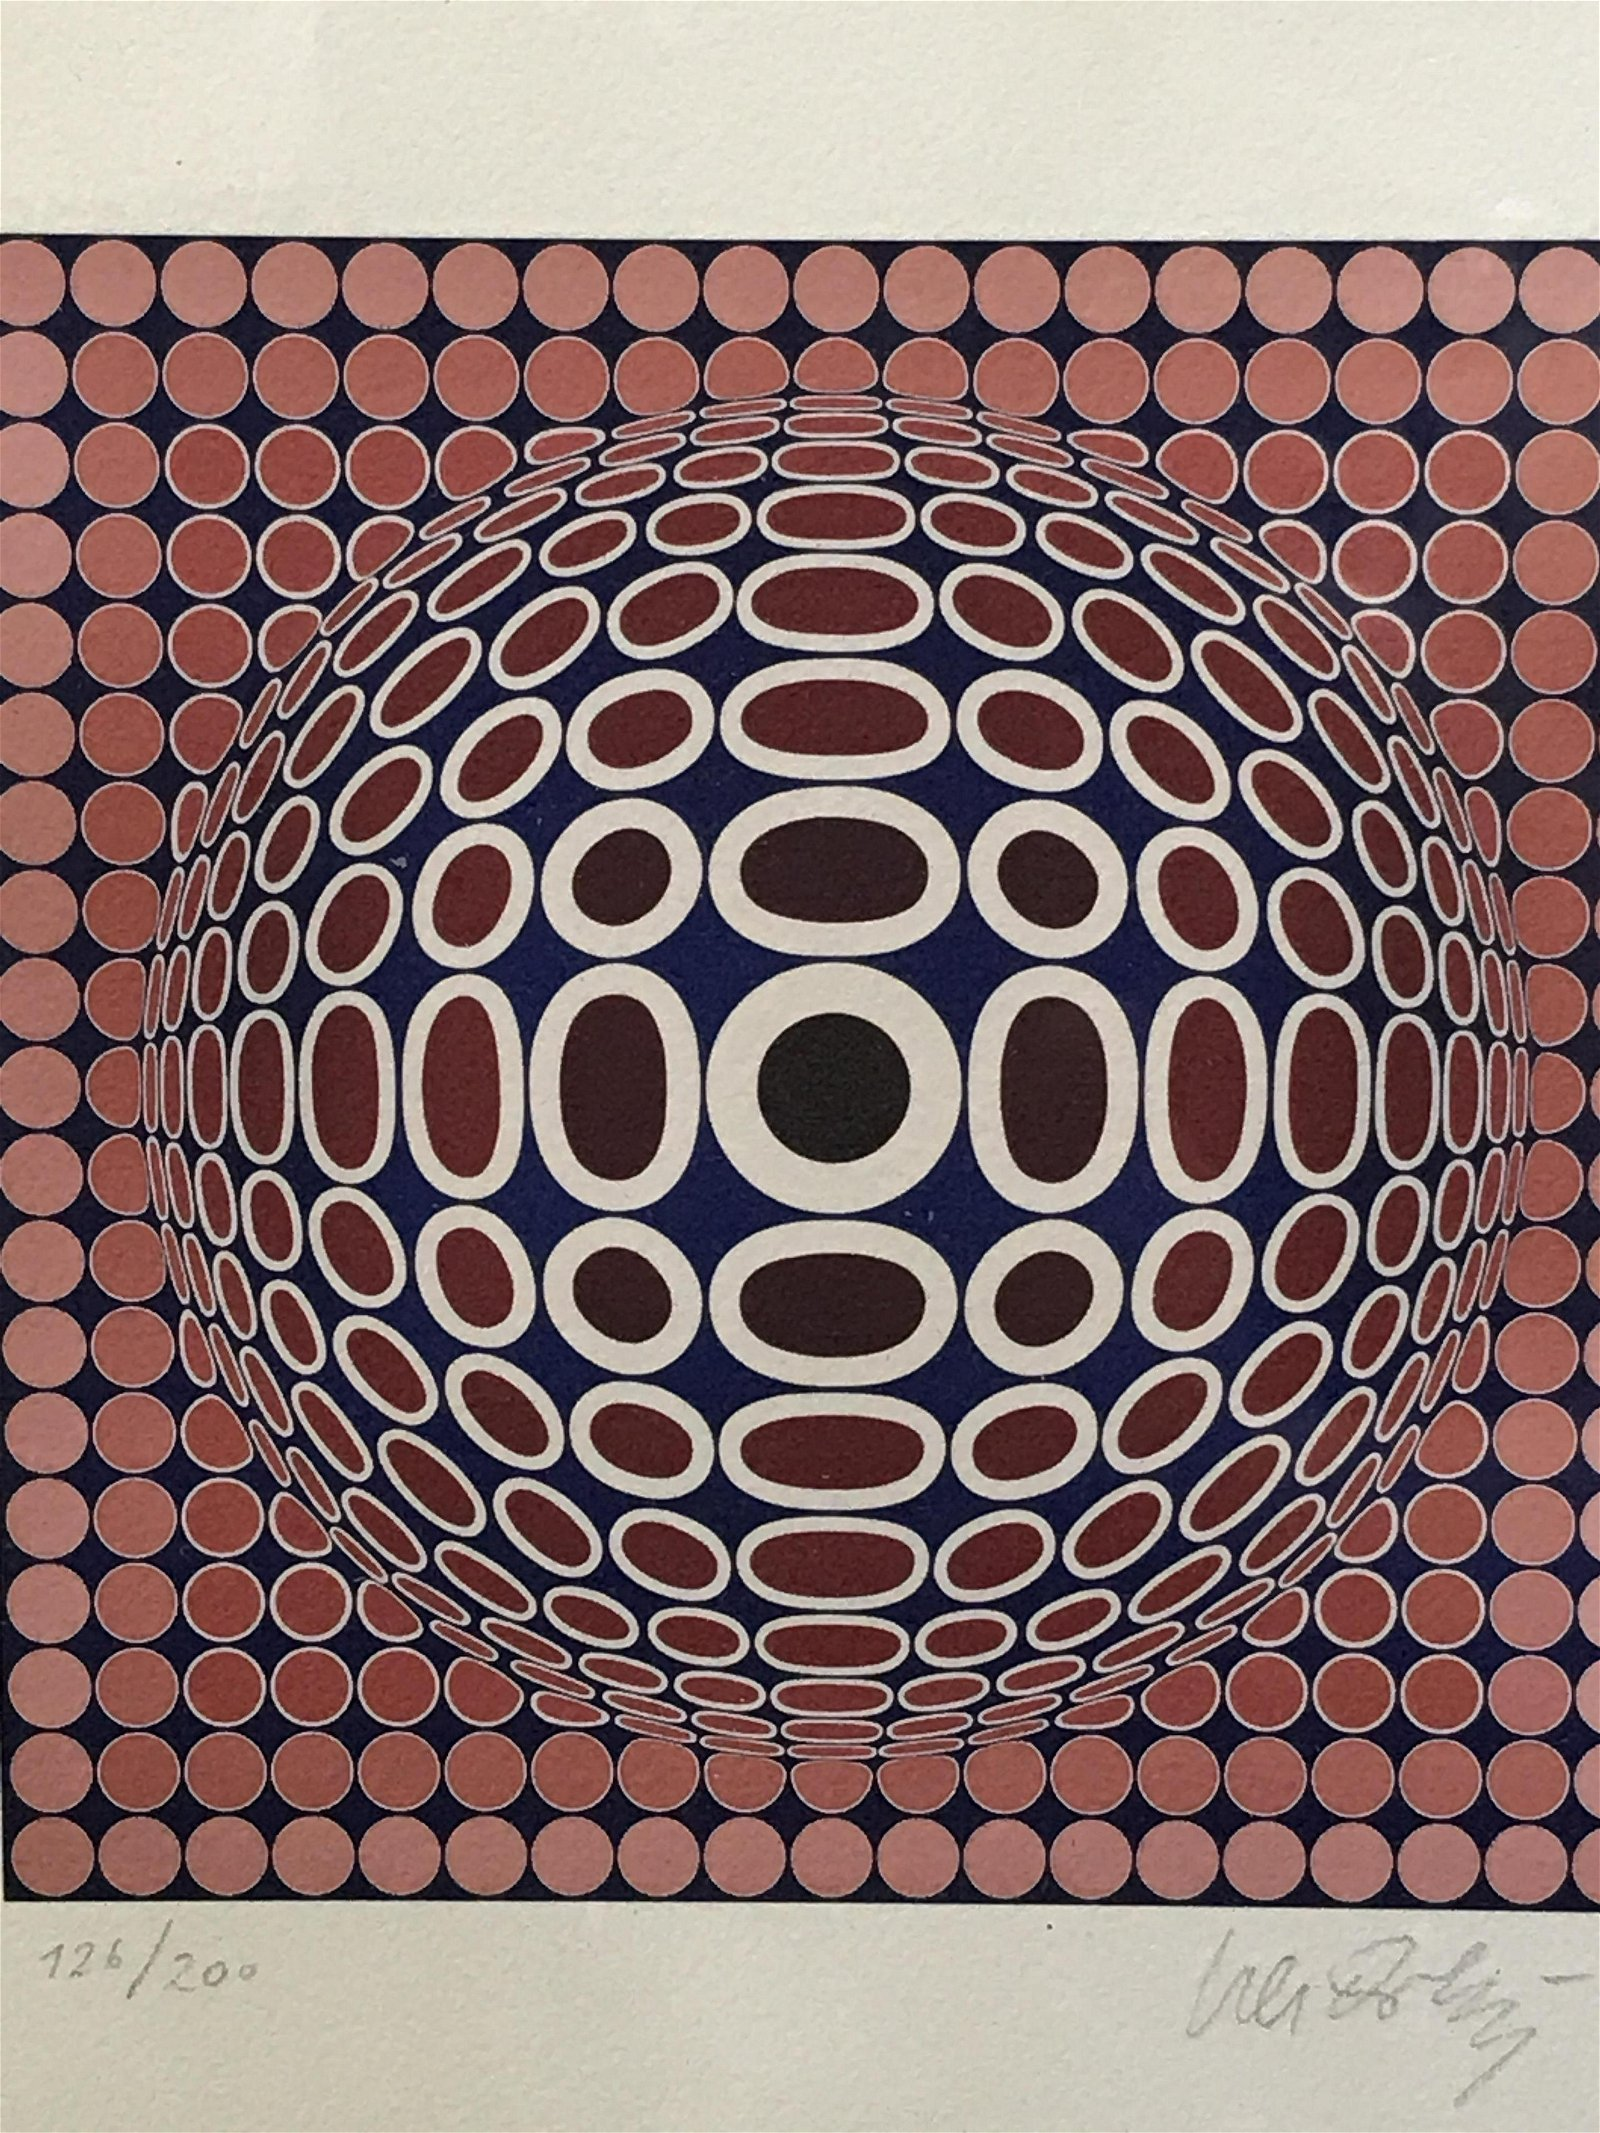 VICTOR VASARELY Signed Ltd Ed Lithograph